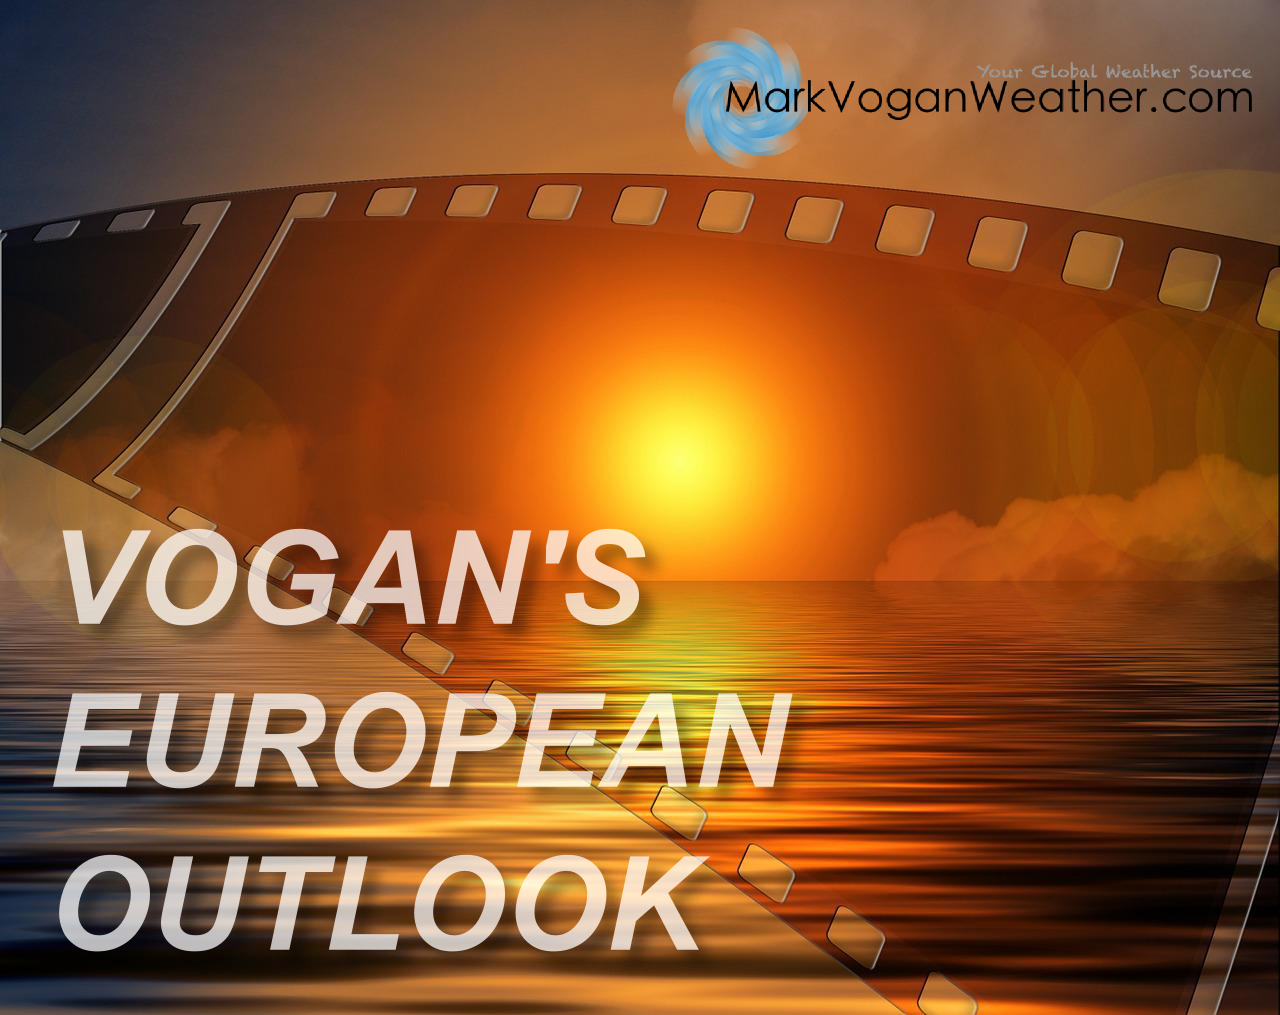 TUE 2 SEP: VOGAN'S EUROPEAN OUTLOOK